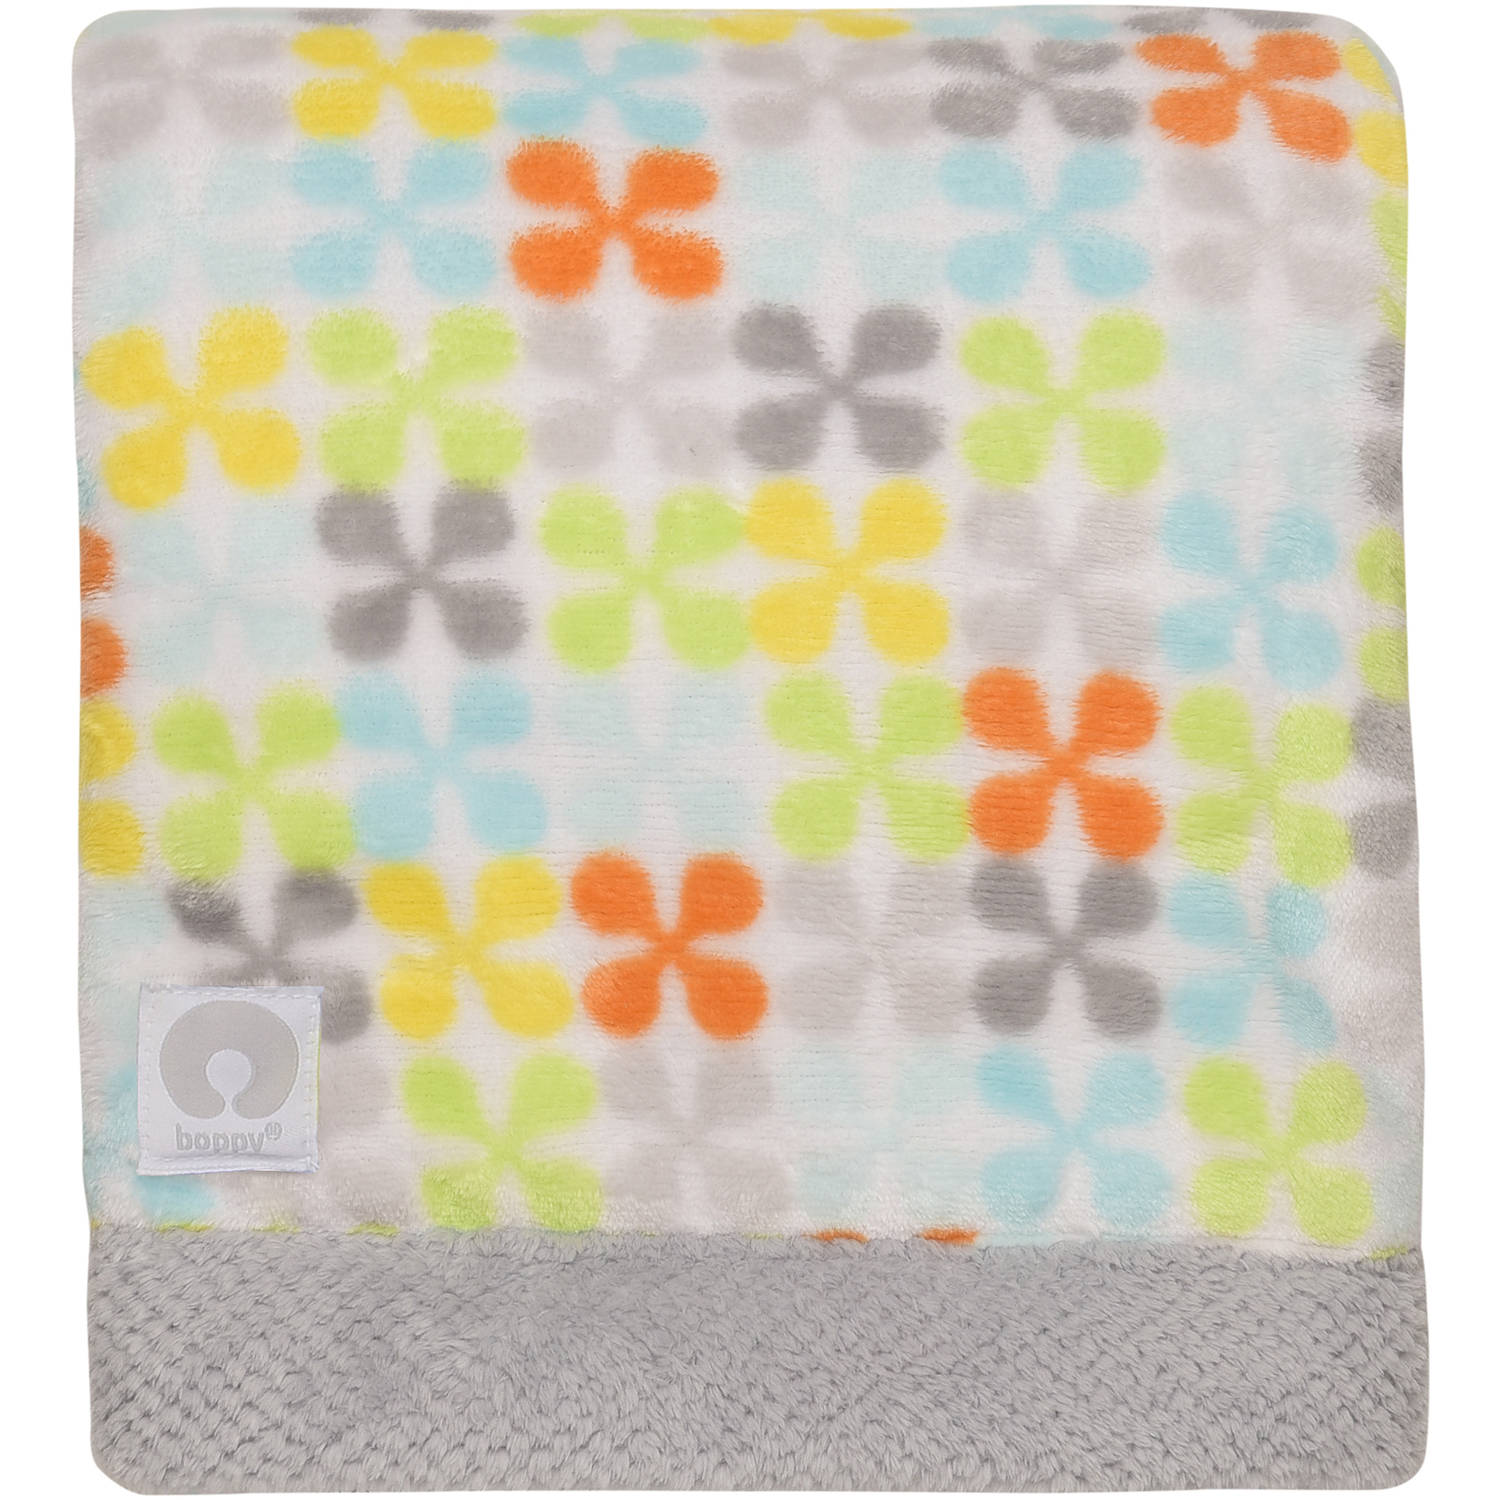 Boppy Luxurious Plush Reversible Blanket, Grey/Jacks Print